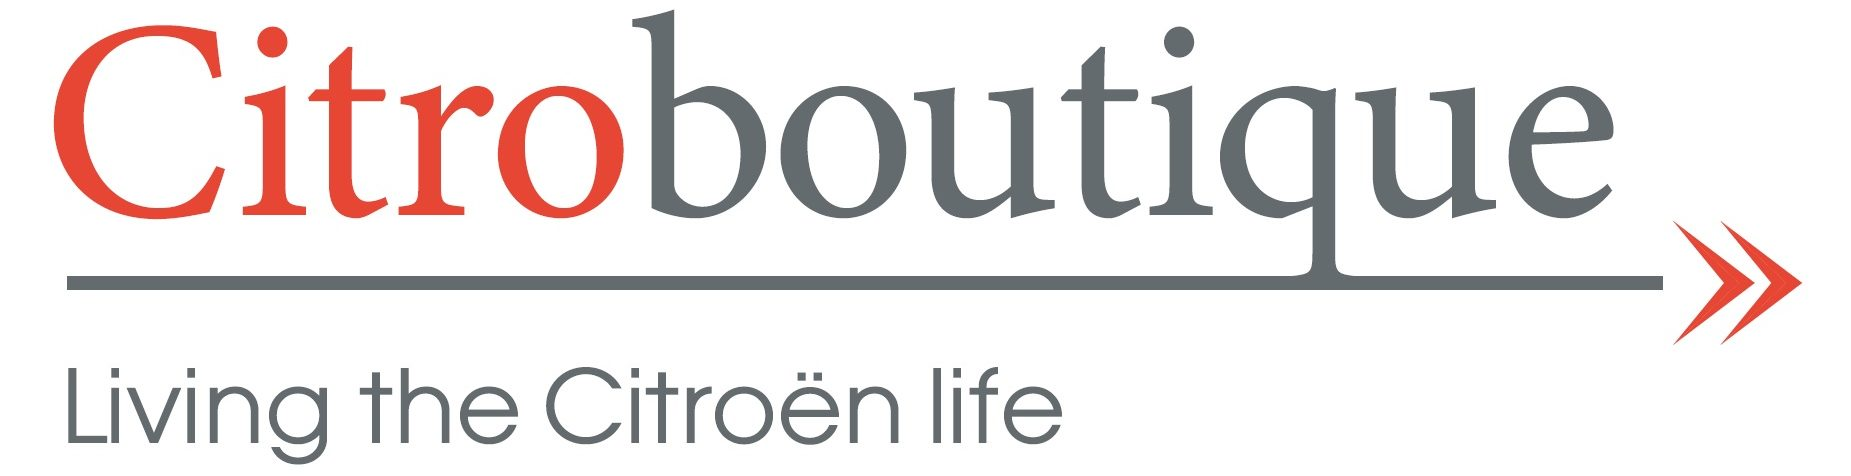 Citroboutique